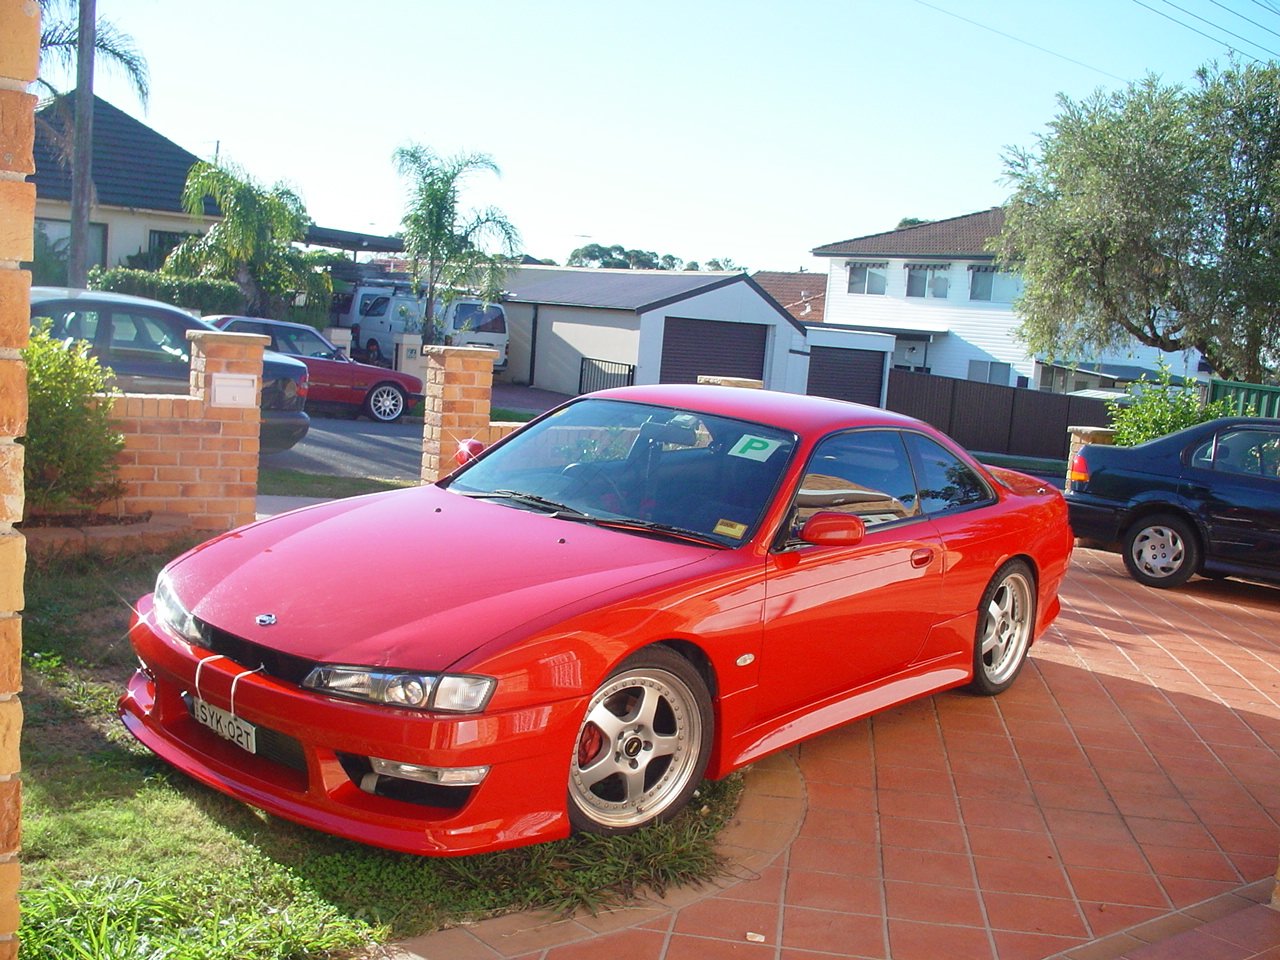 1997 nissan 200sx information and photos zombiedrive. Black Bedroom Furniture Sets. Home Design Ideas